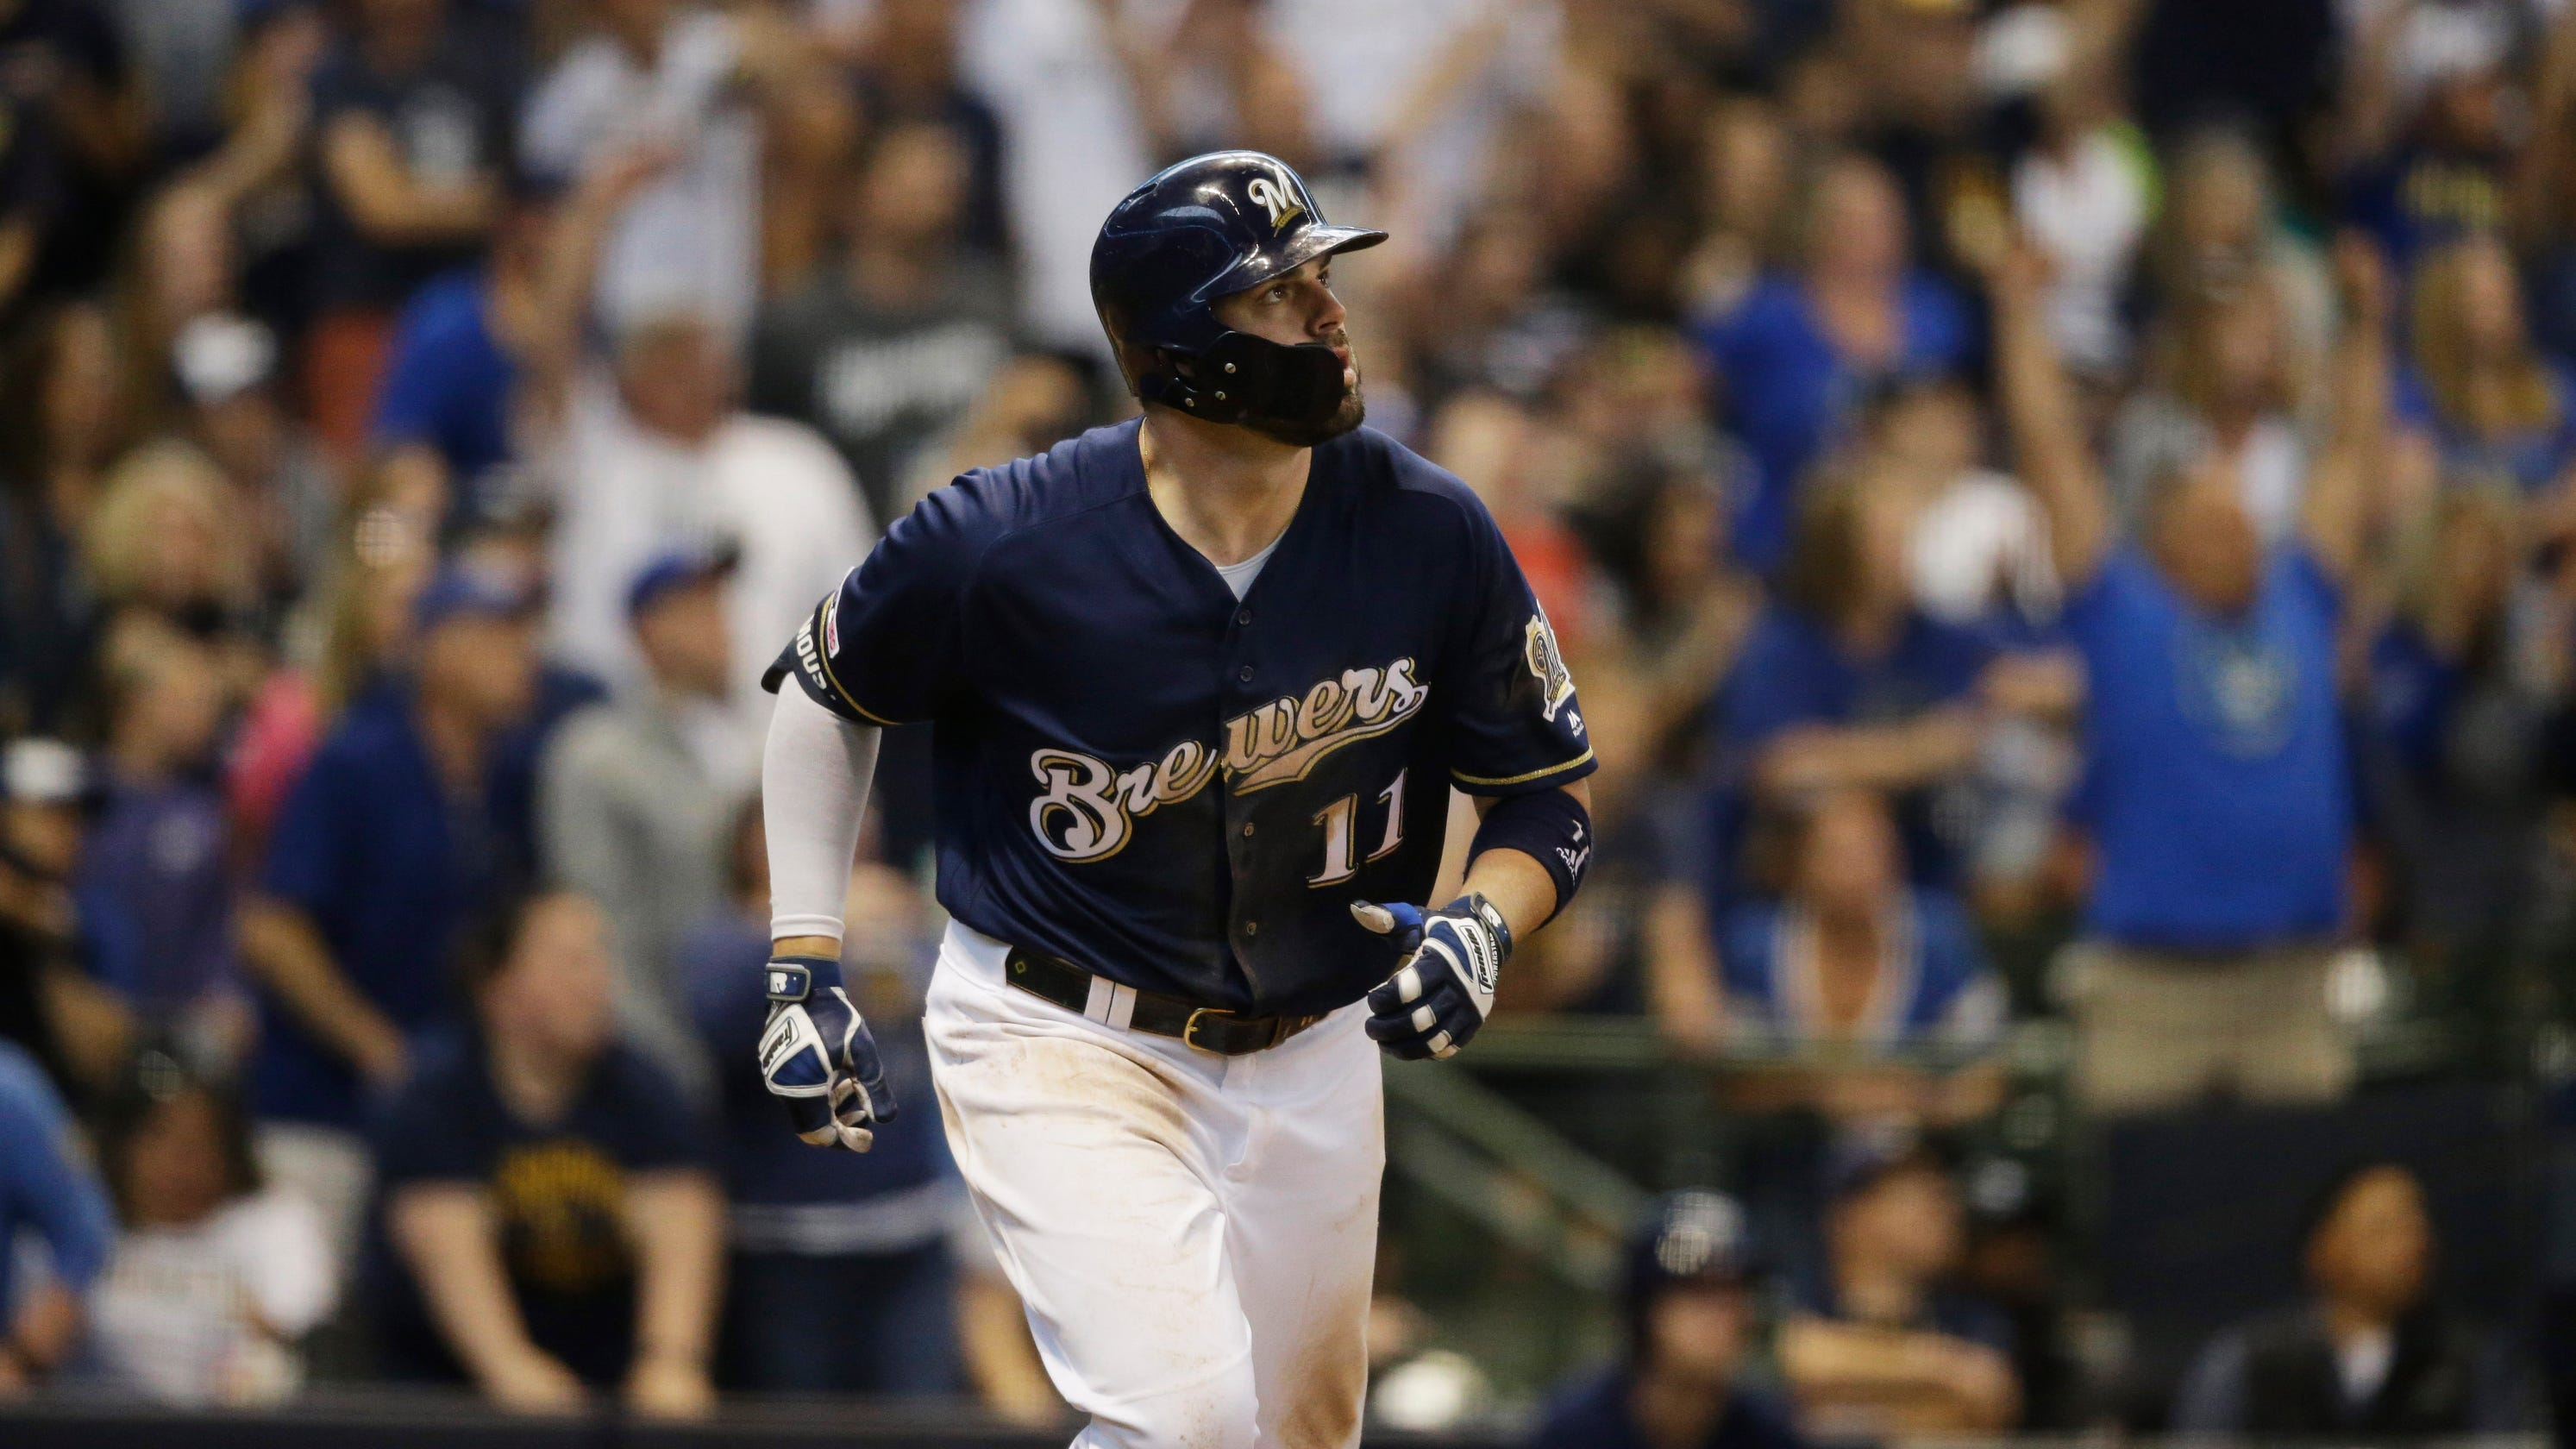 wholesale dealer e1c50 ec1cd Brewers 5, Pirates 2: Mike Moustakas steals the show with a ...